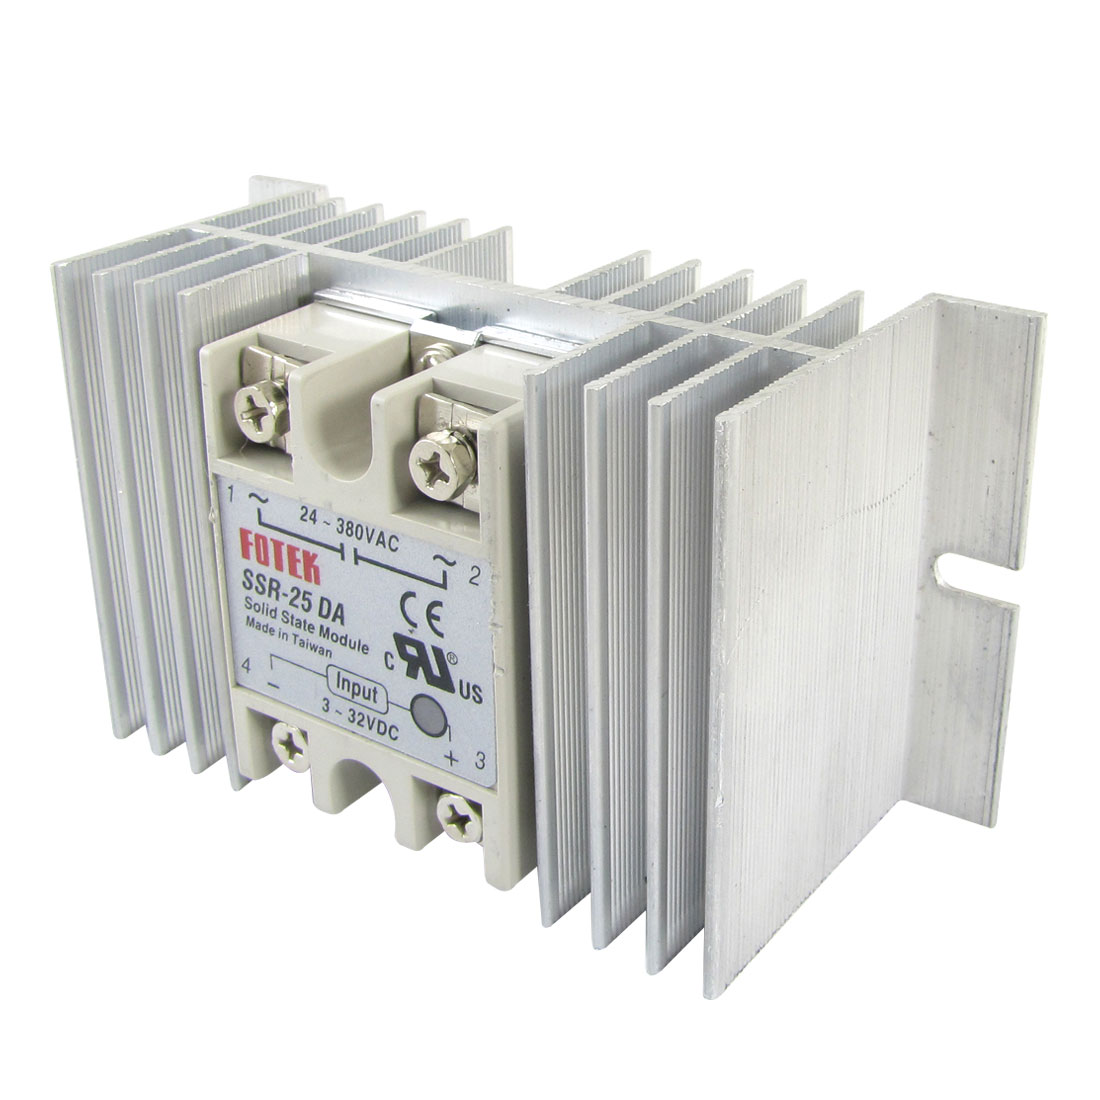 DC to AC Solid State Relay SSR-25DA 25A 3-32V 24-380V + Aluminium heat sink